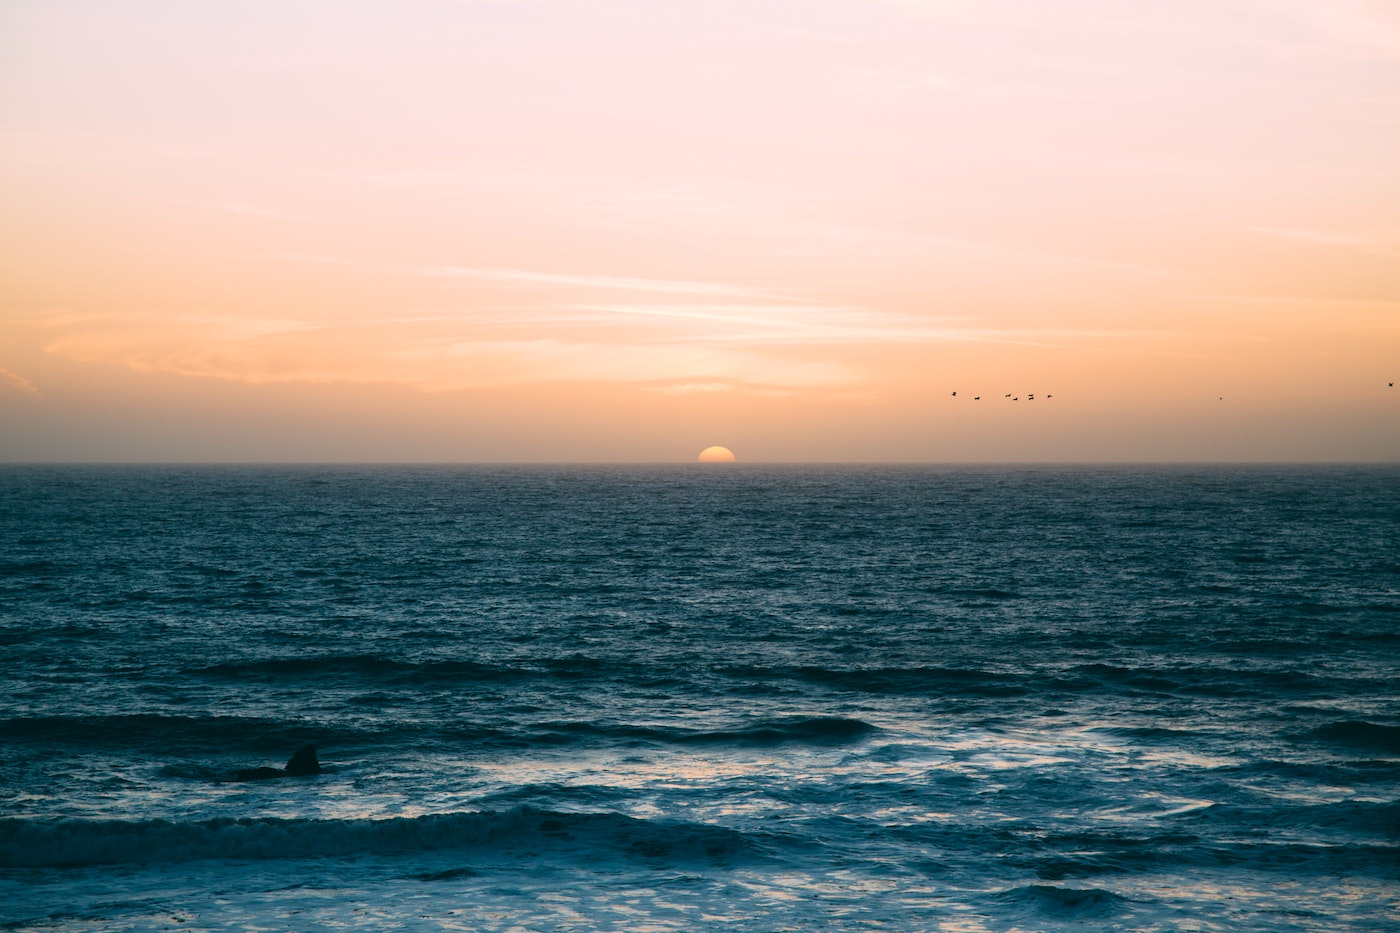 Water with sunset on horizen